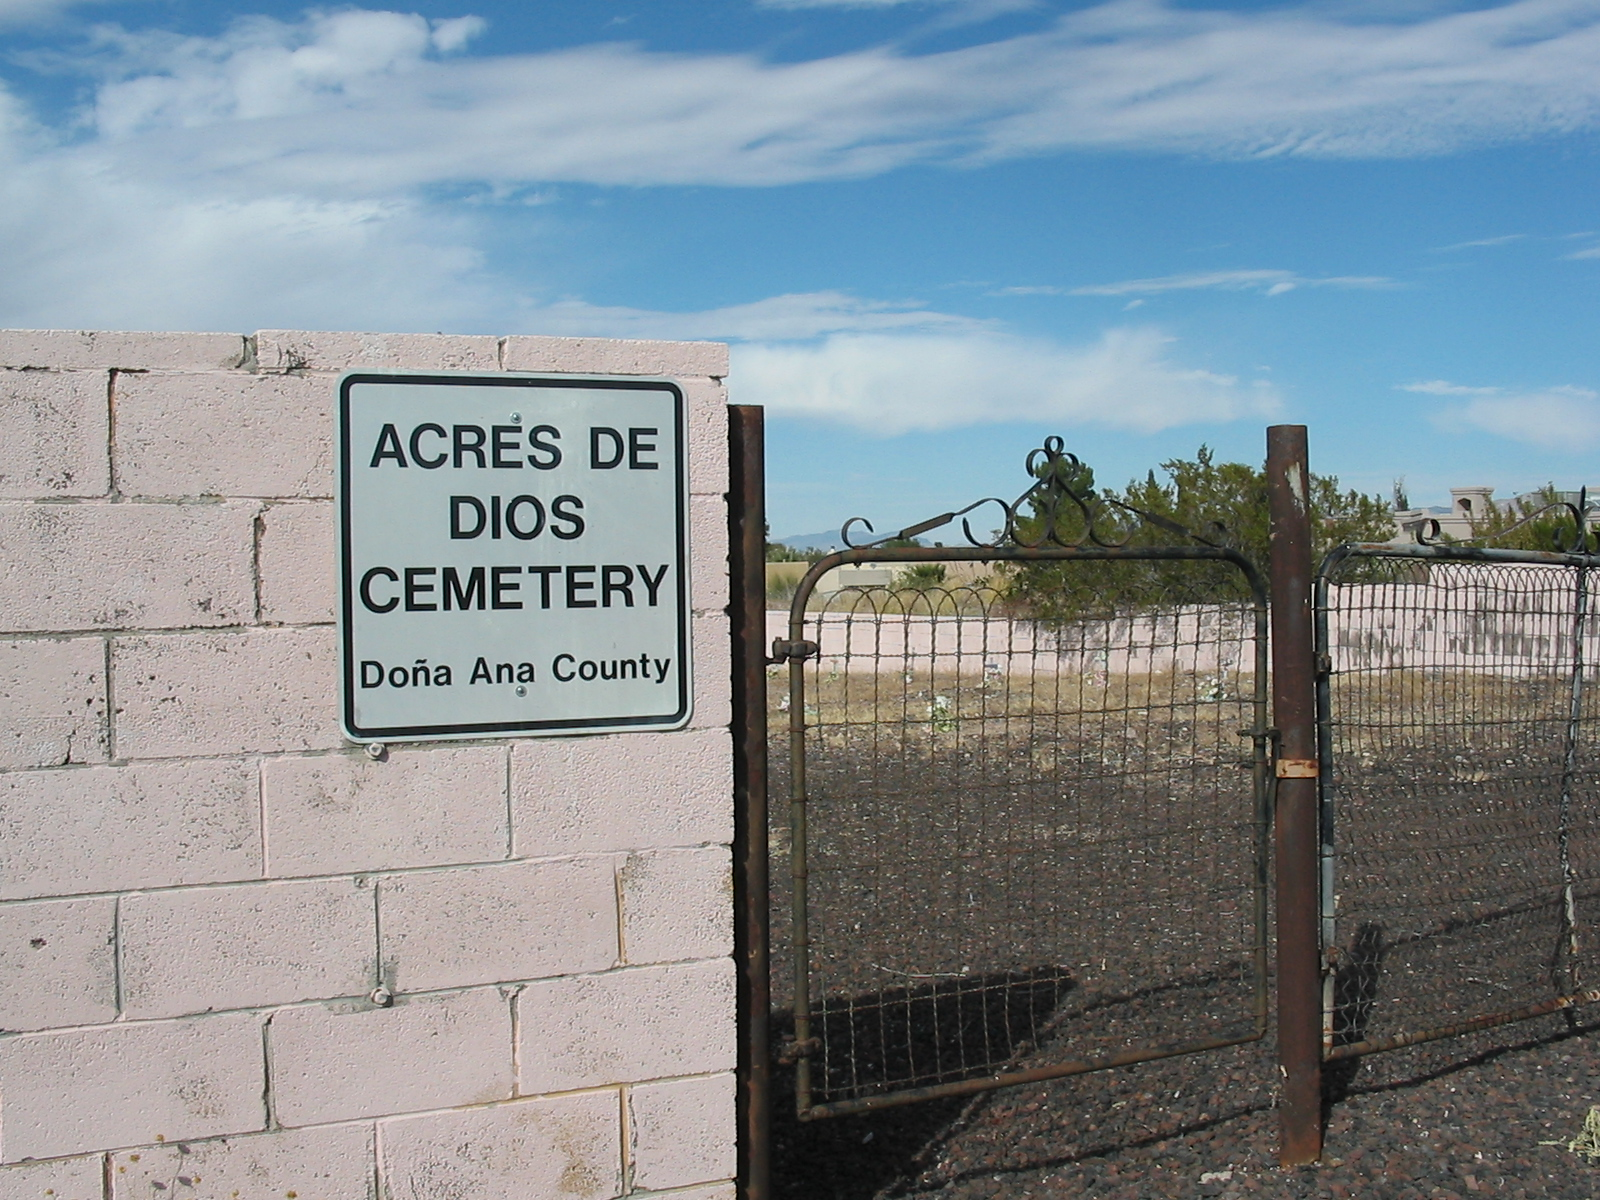 Acres De Dios Cemetery